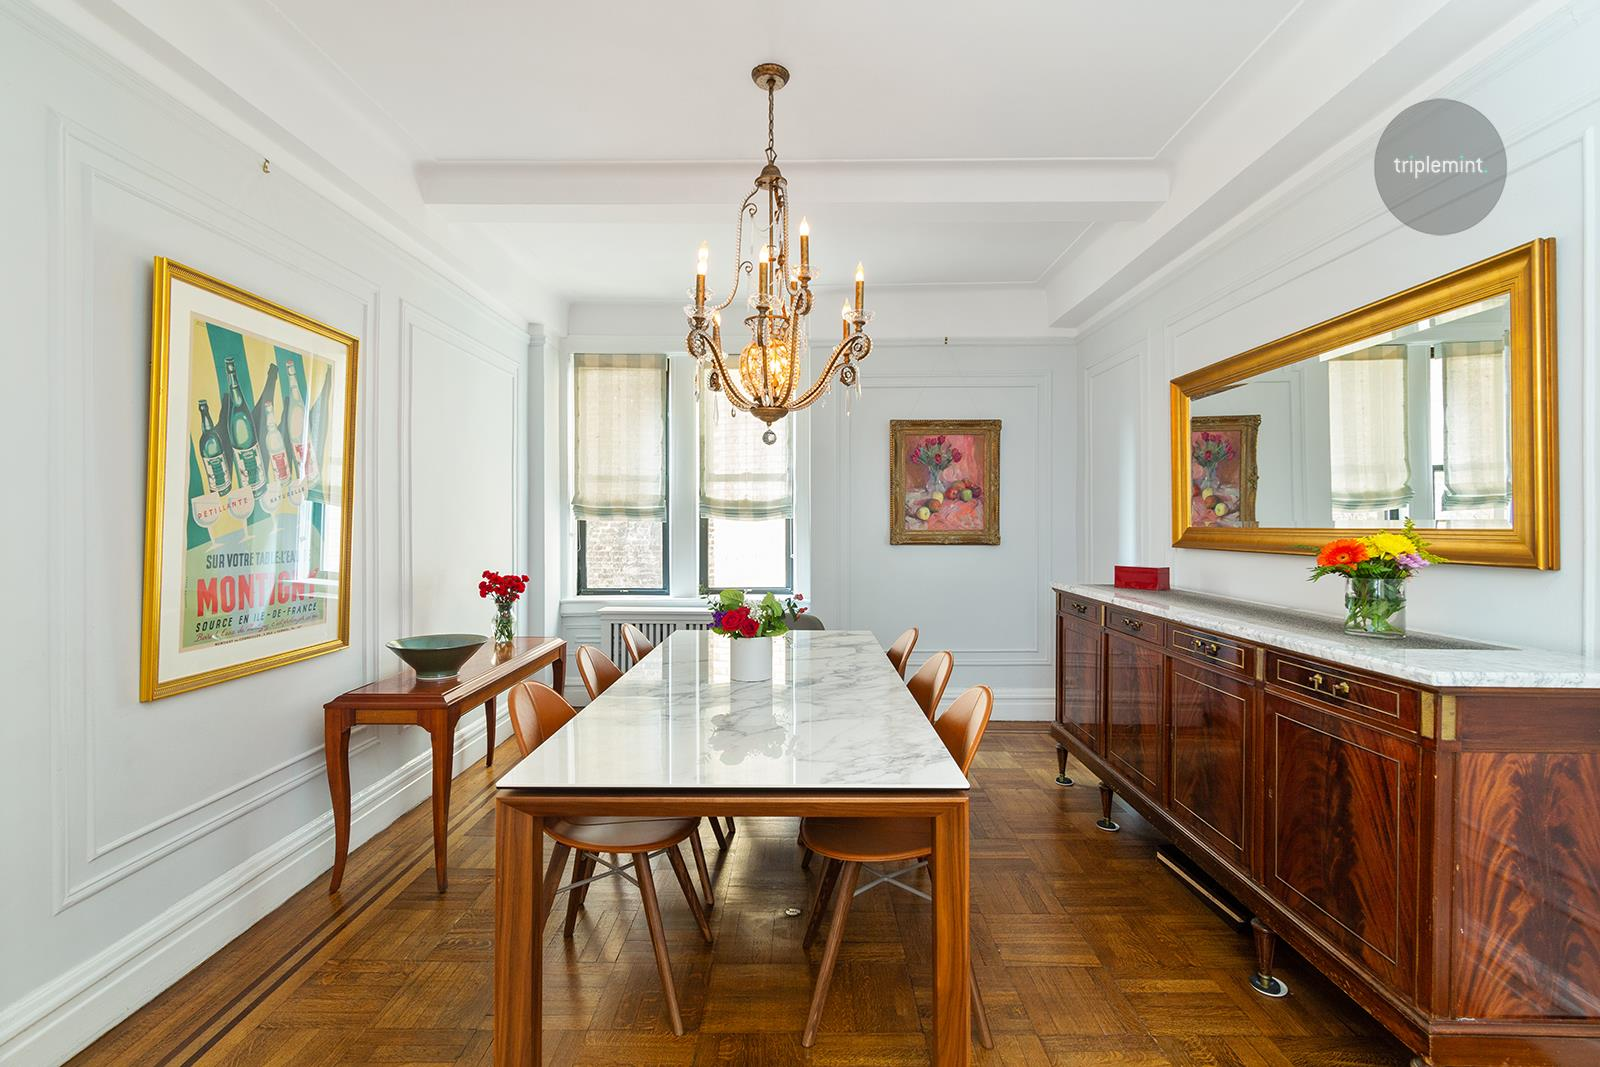 Apartment for sale at 130 West 86th Street, Apt 5-A